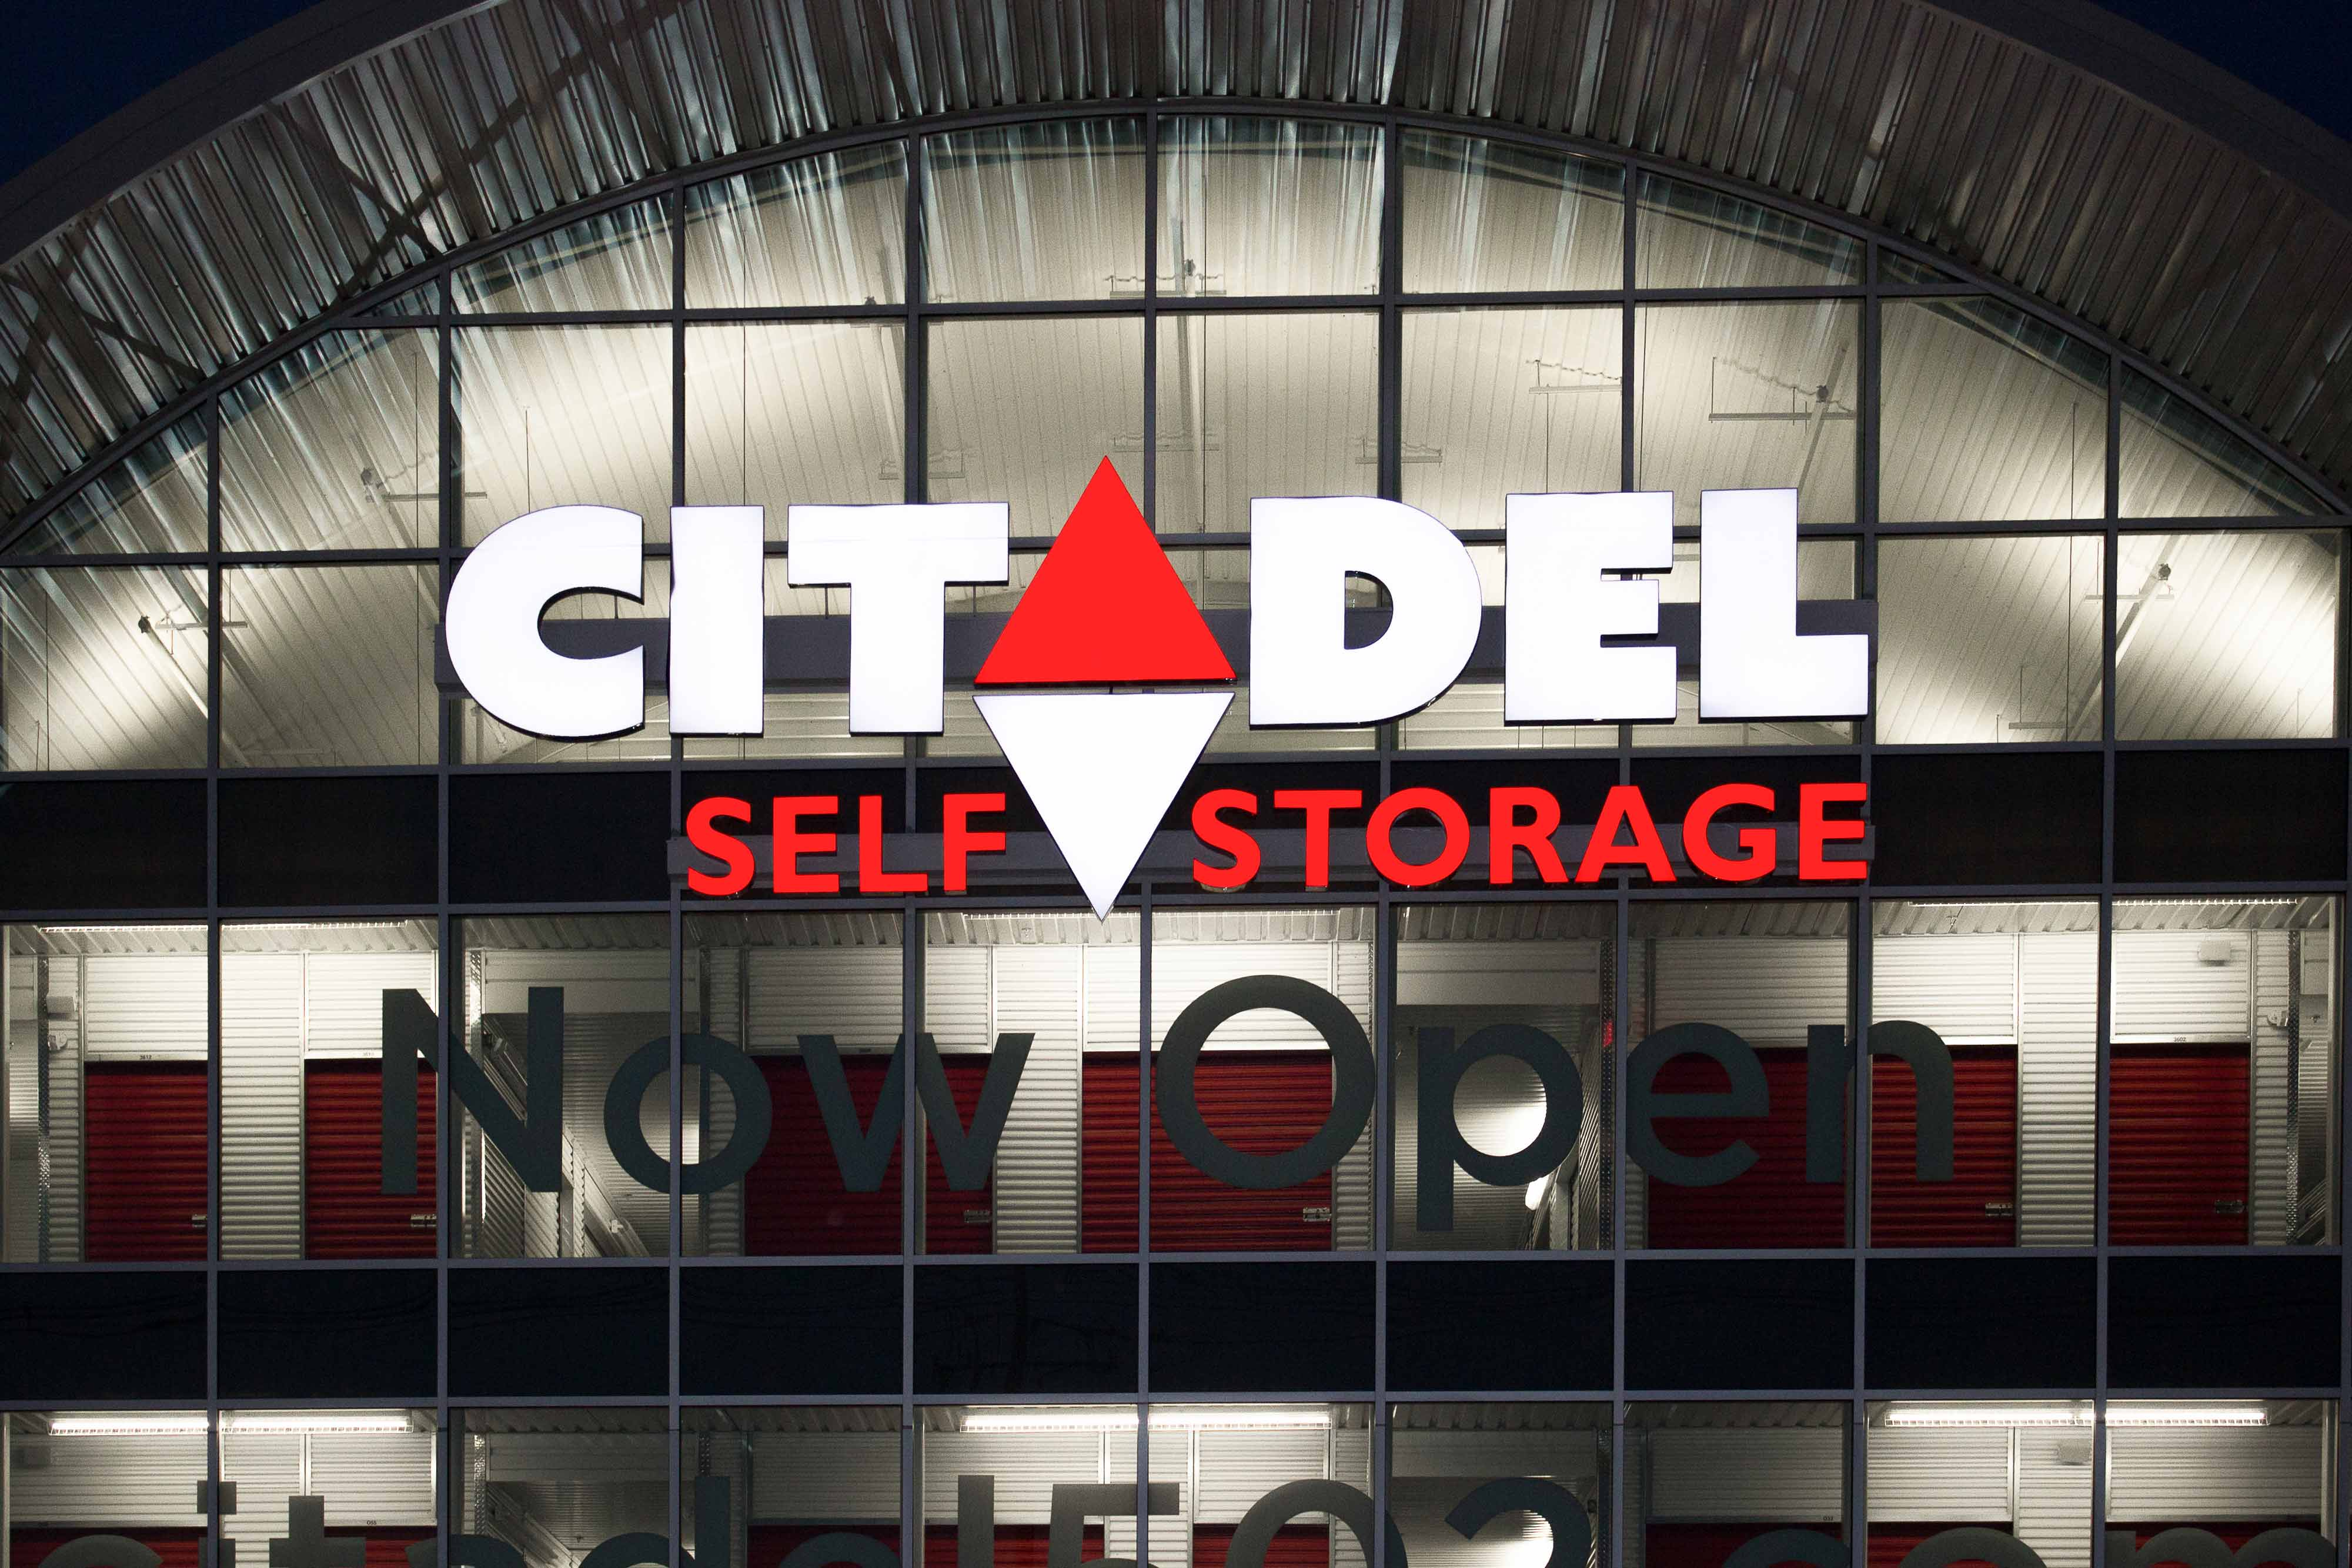 Channel Letters & Digital Signage Company to Promote Your Business